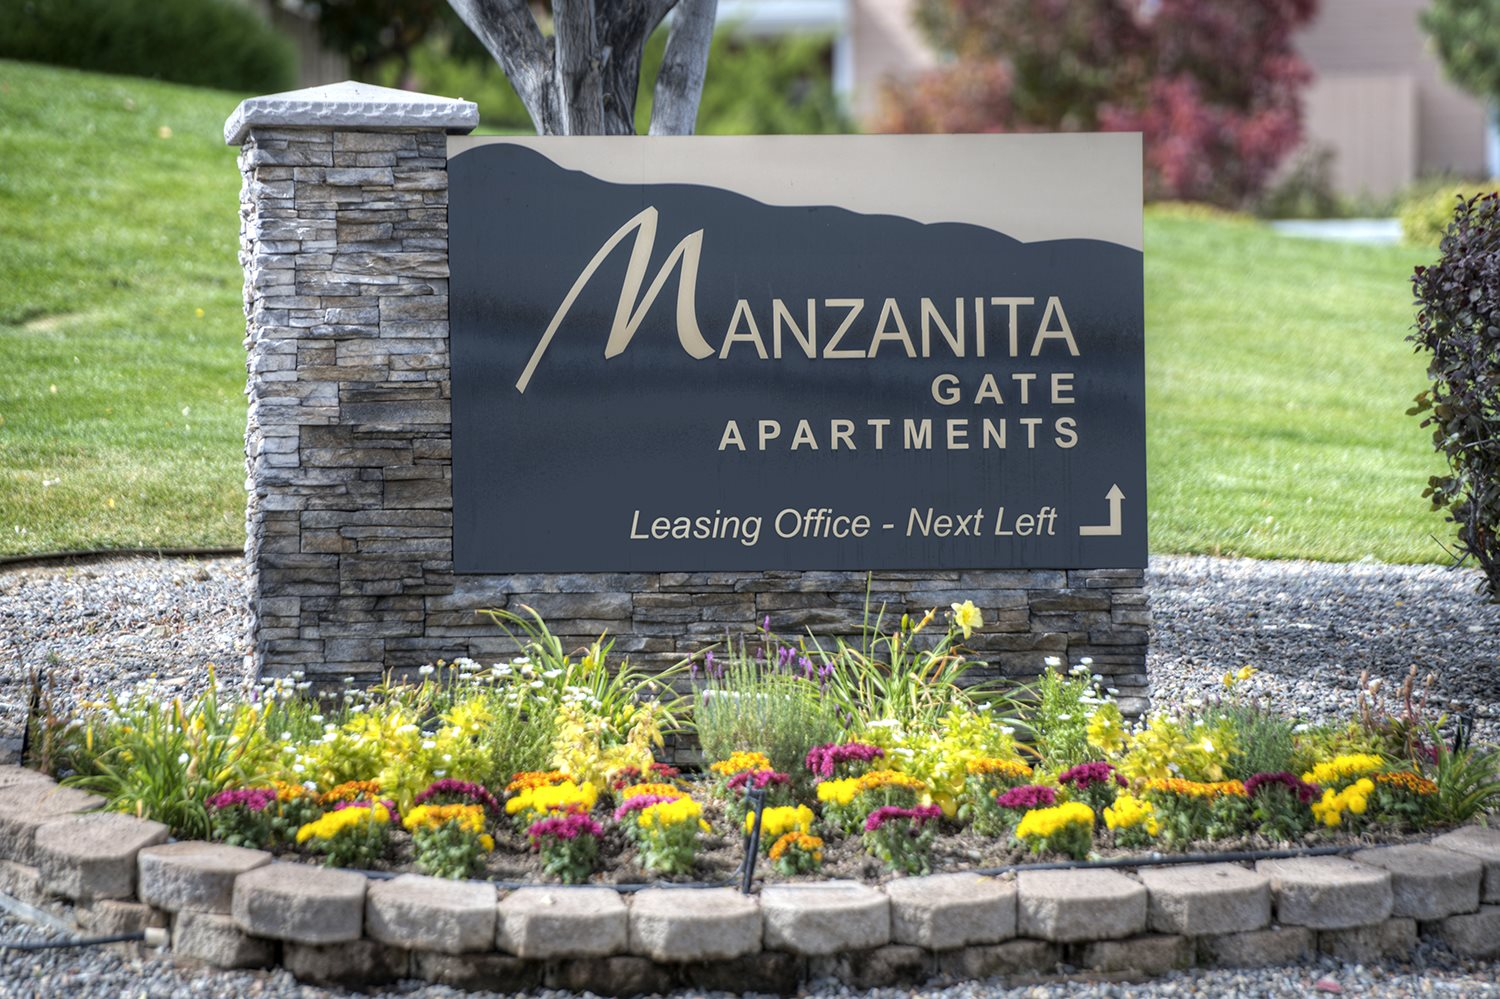 Manzanita Gate Apartments Sign at Manzanita Gate Apartment Homes, Reno, NV